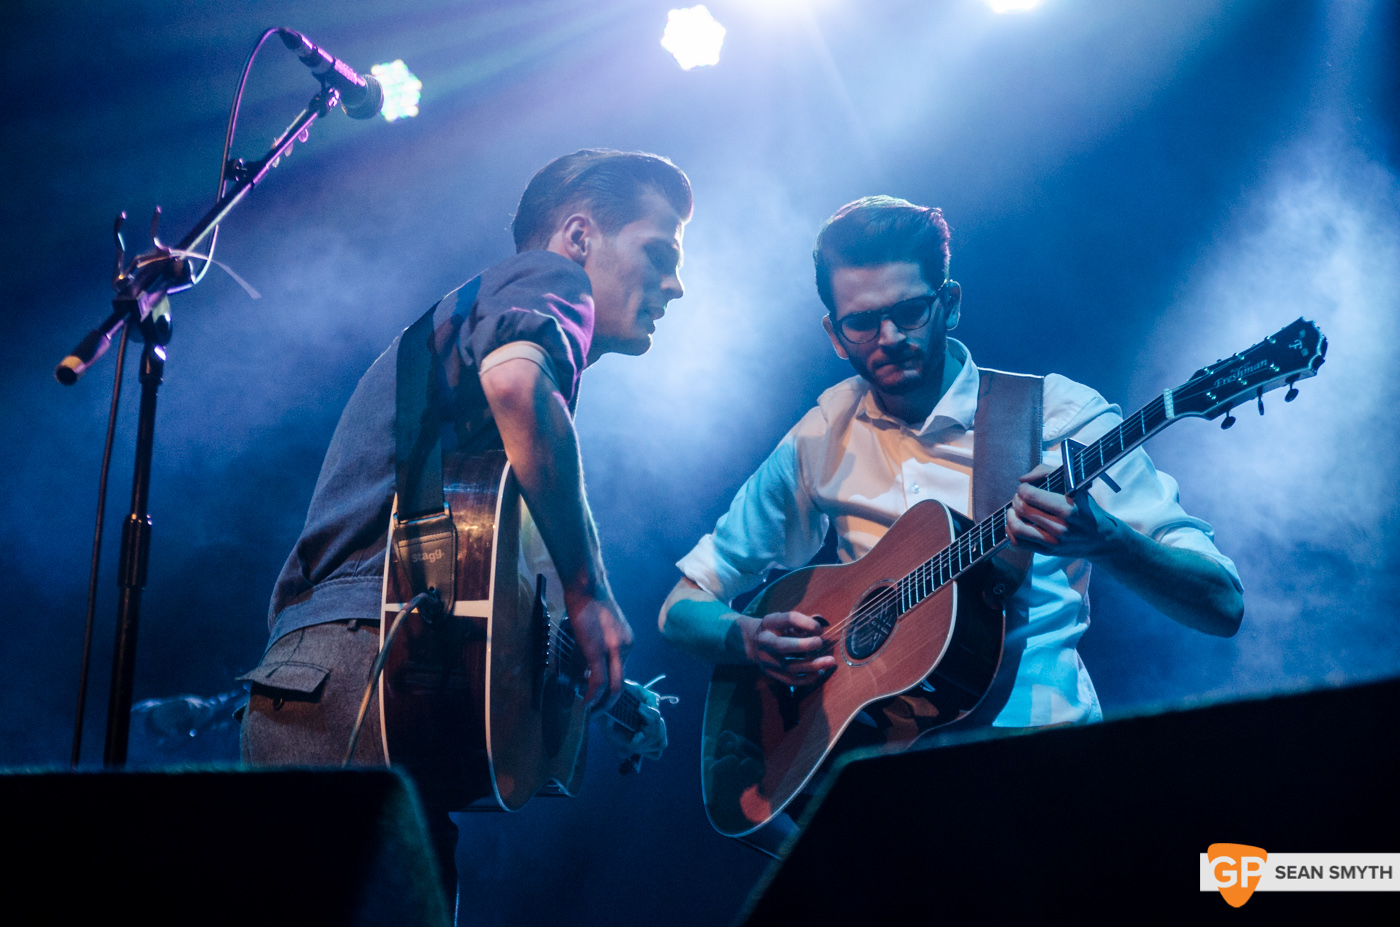 hudson-taylor-at-the-olympia-theatre-26-2-15-by-sean-smyth-13-of-26_16136817863_o